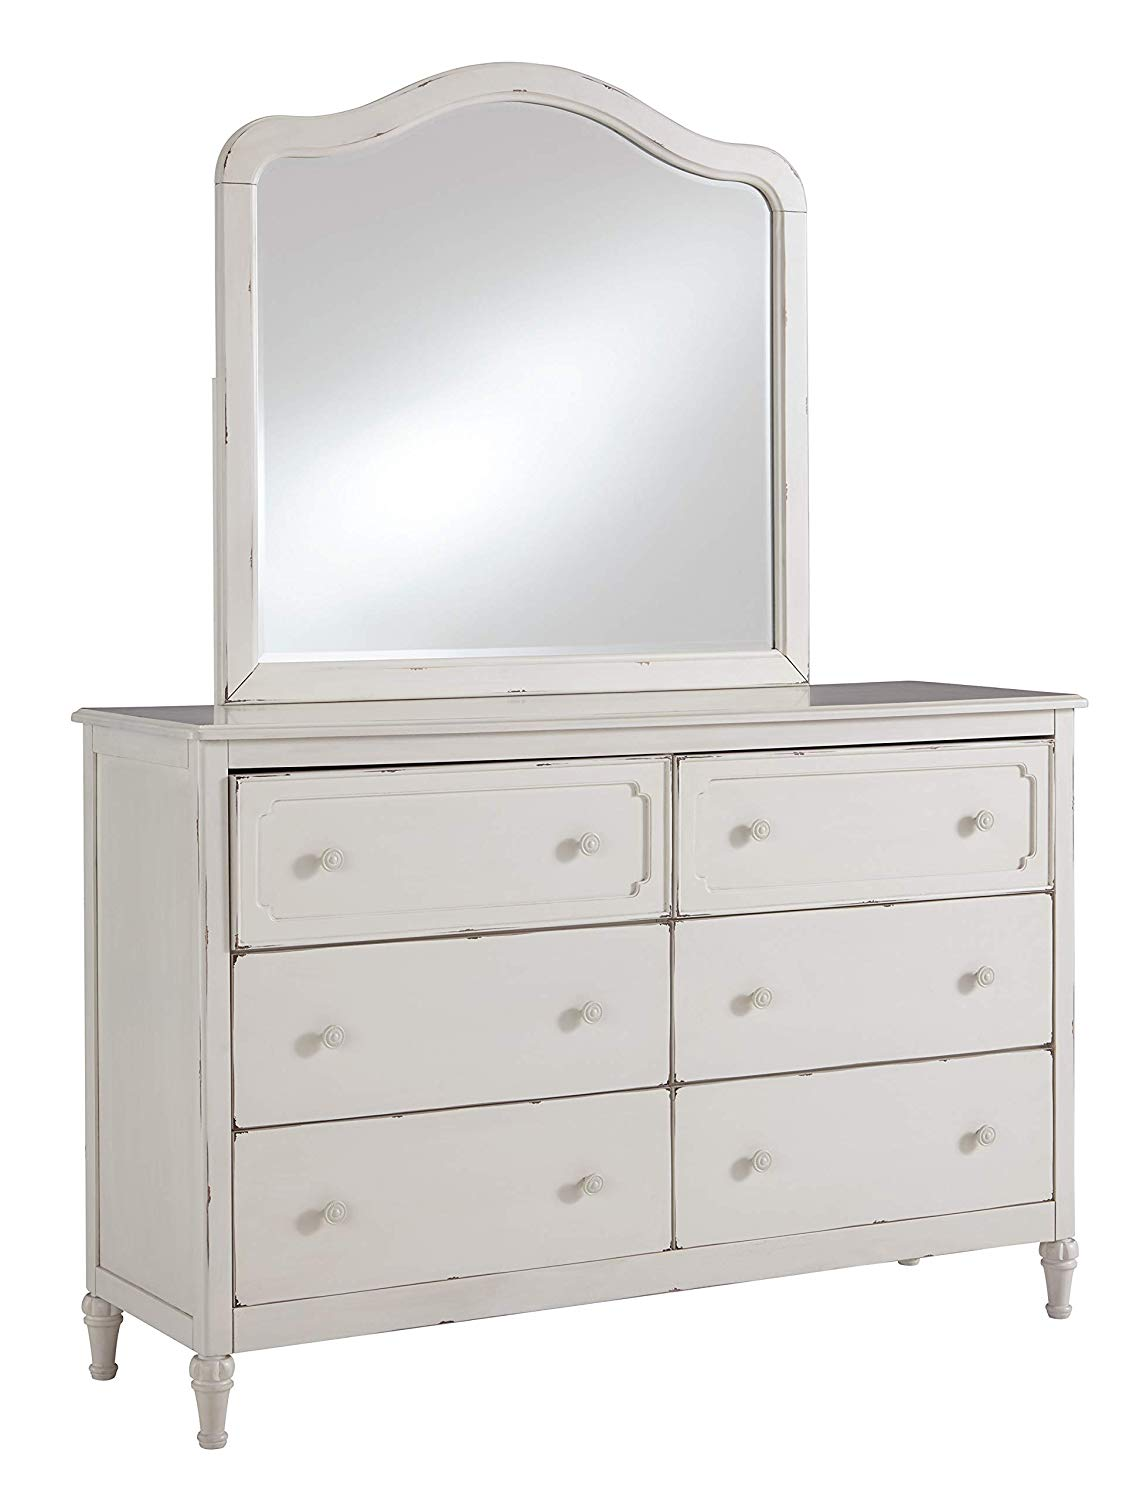 Luxury White Wood Dresser with Mirror